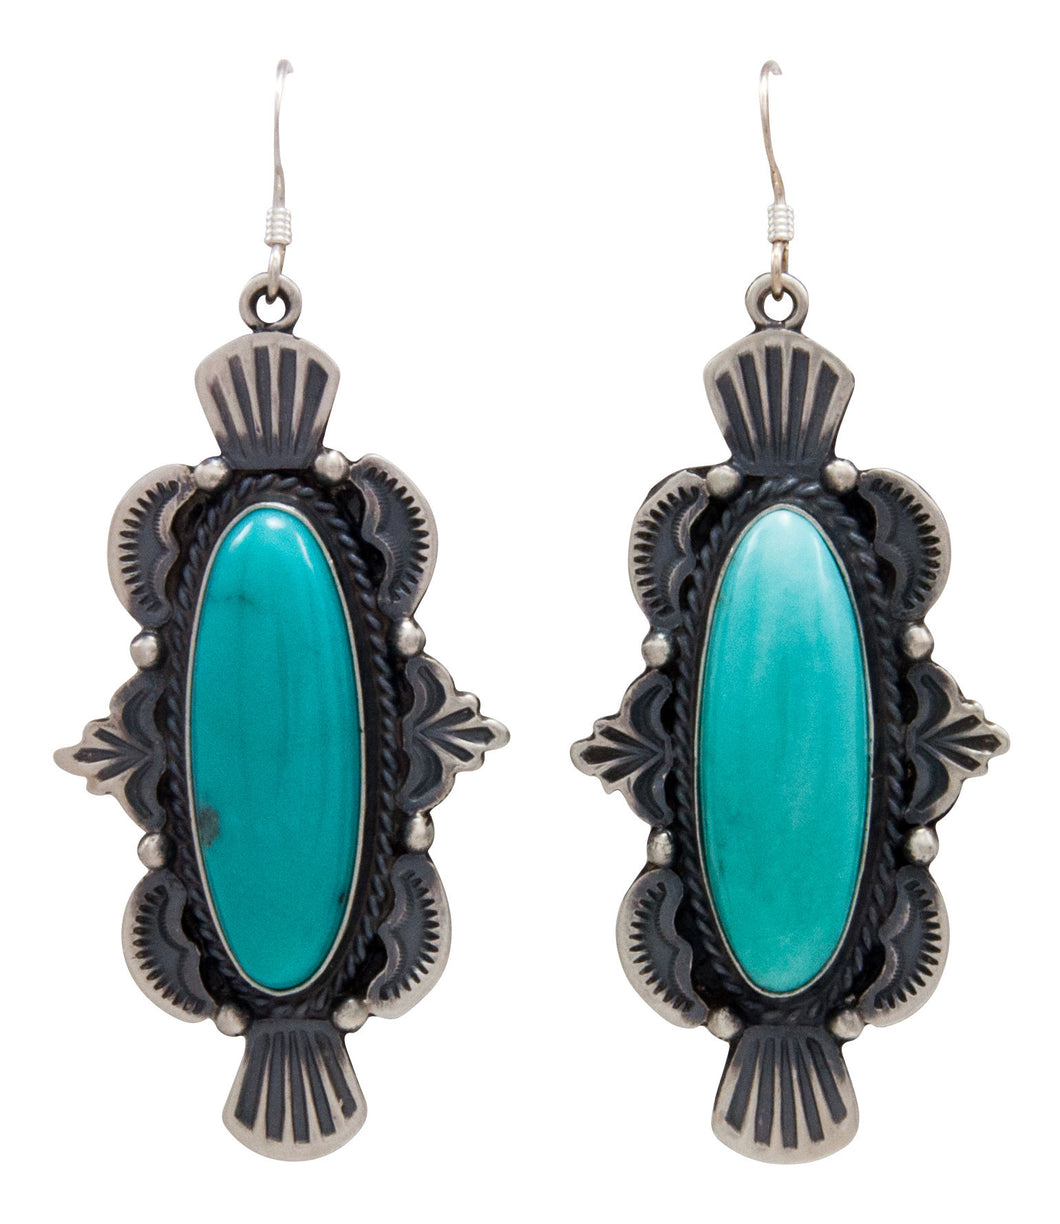 Navajo Native American Kingman Turquoise Earrings by Calladitto SKU232127